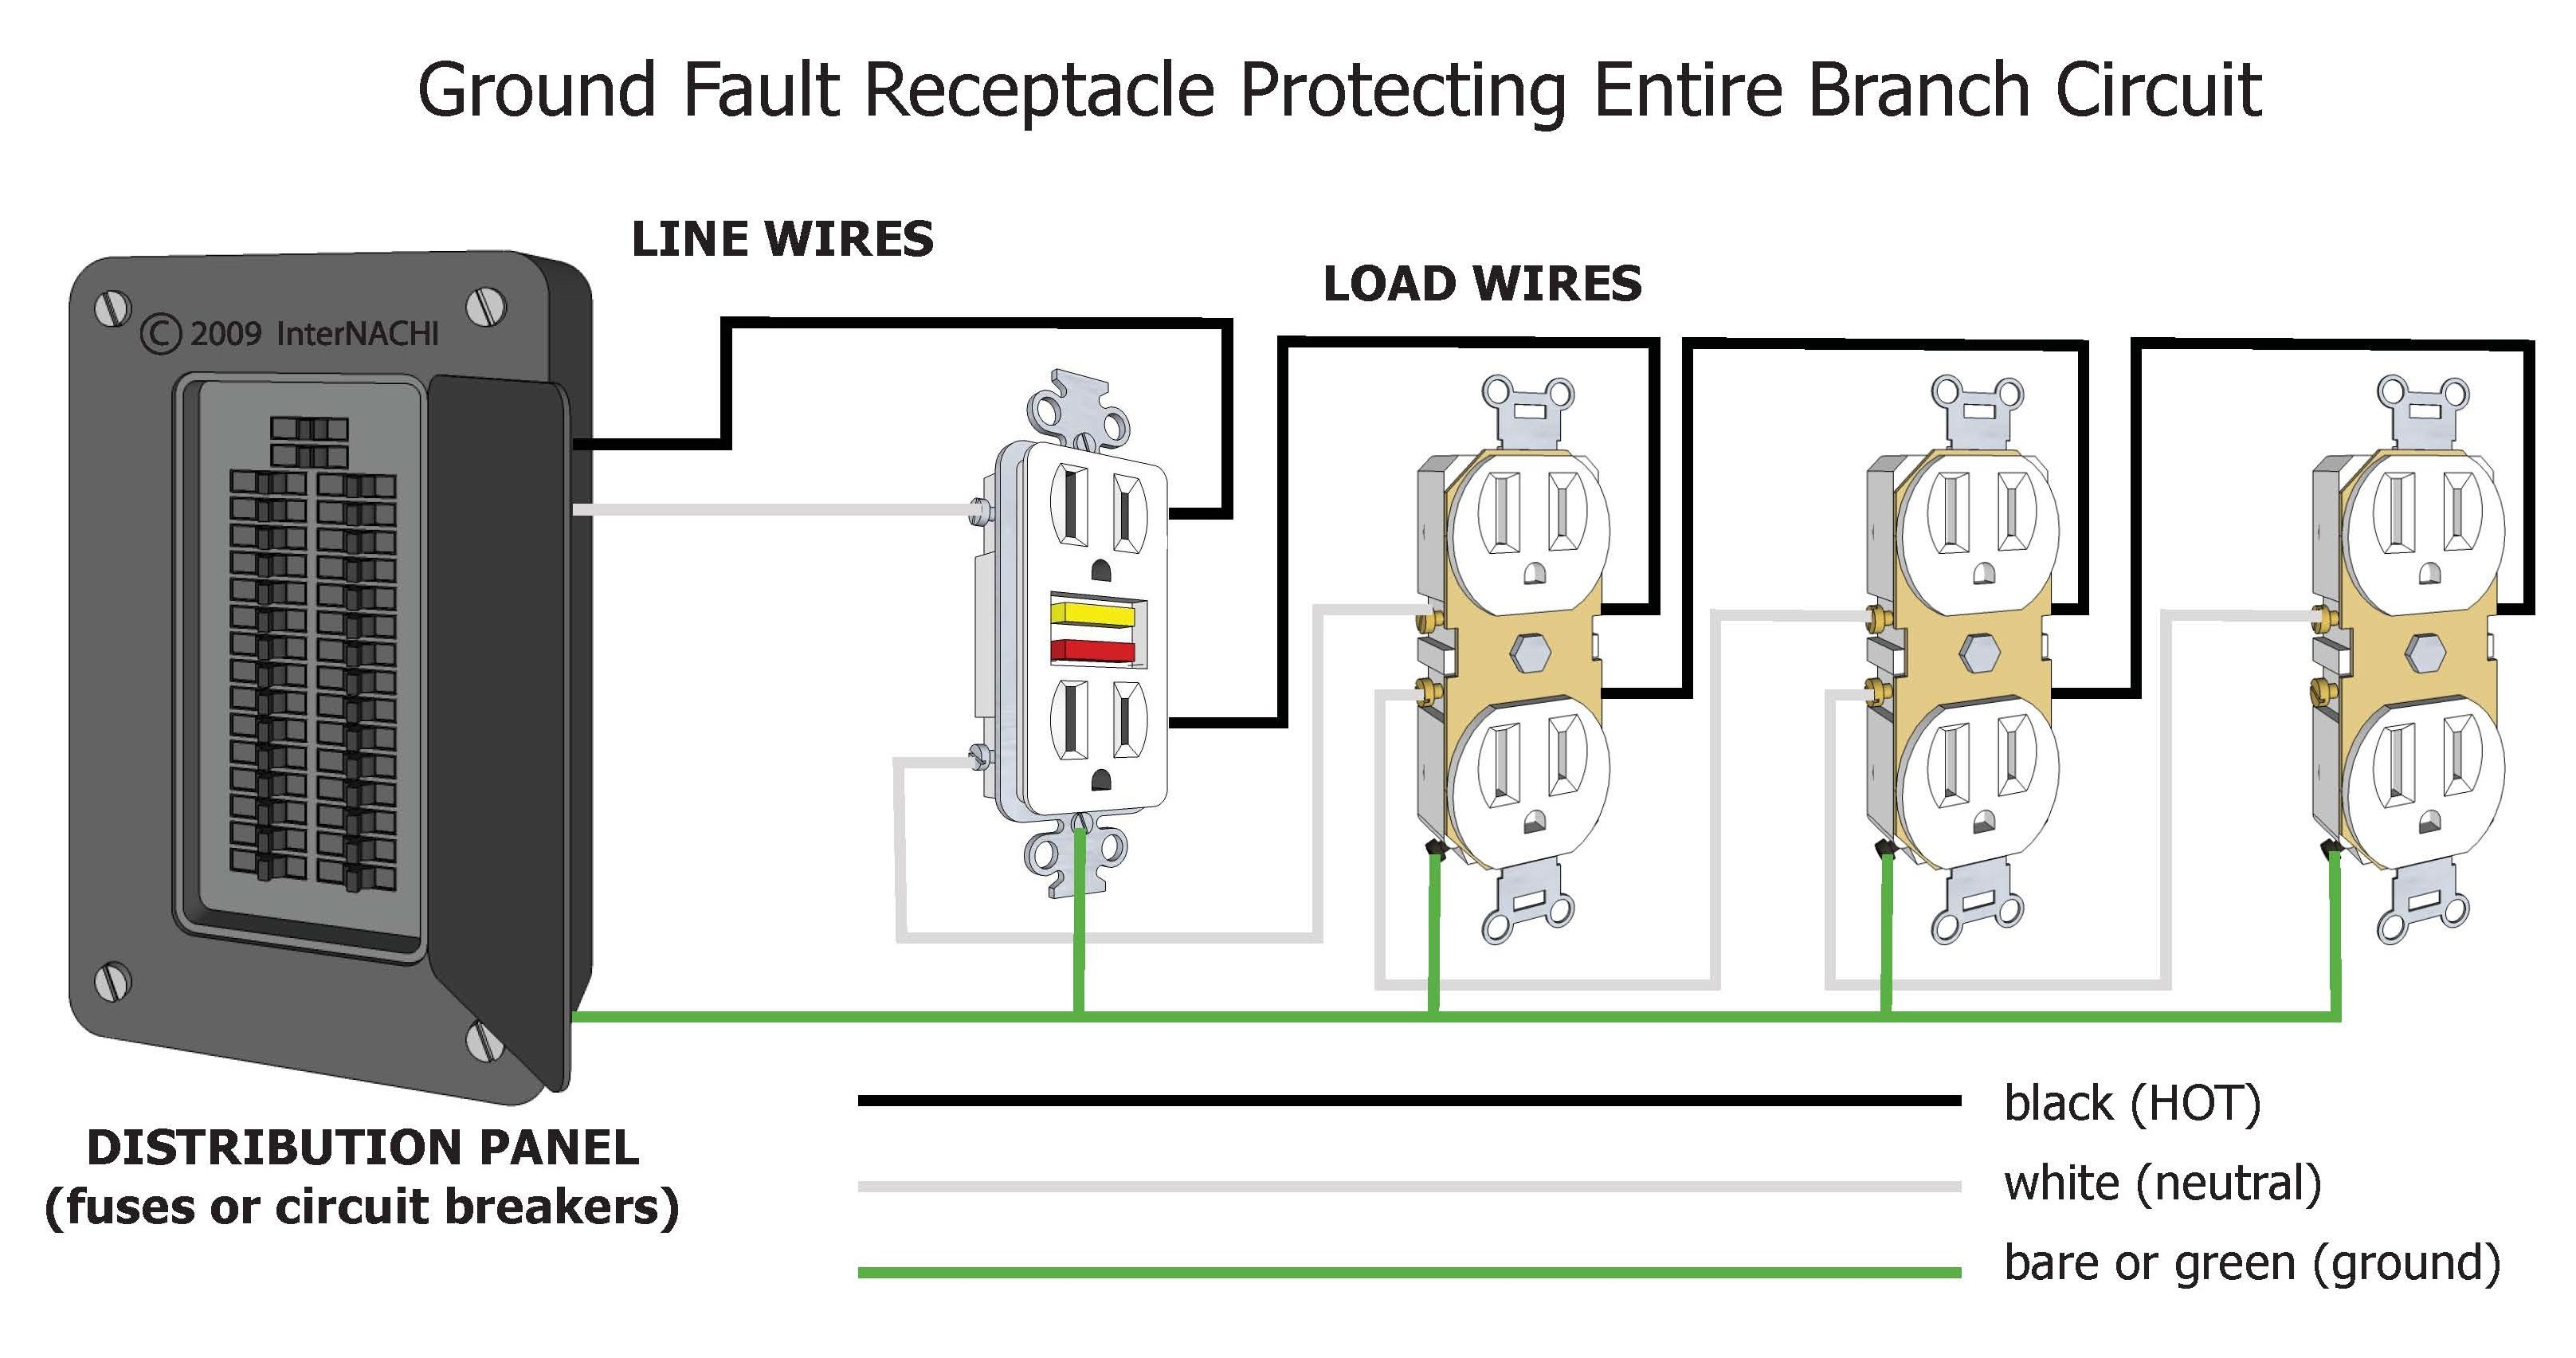 gfci branch circuit color gfci circuit breaker wiring diagram efcaviation com gfci wiring diagram at bakdesigns.co